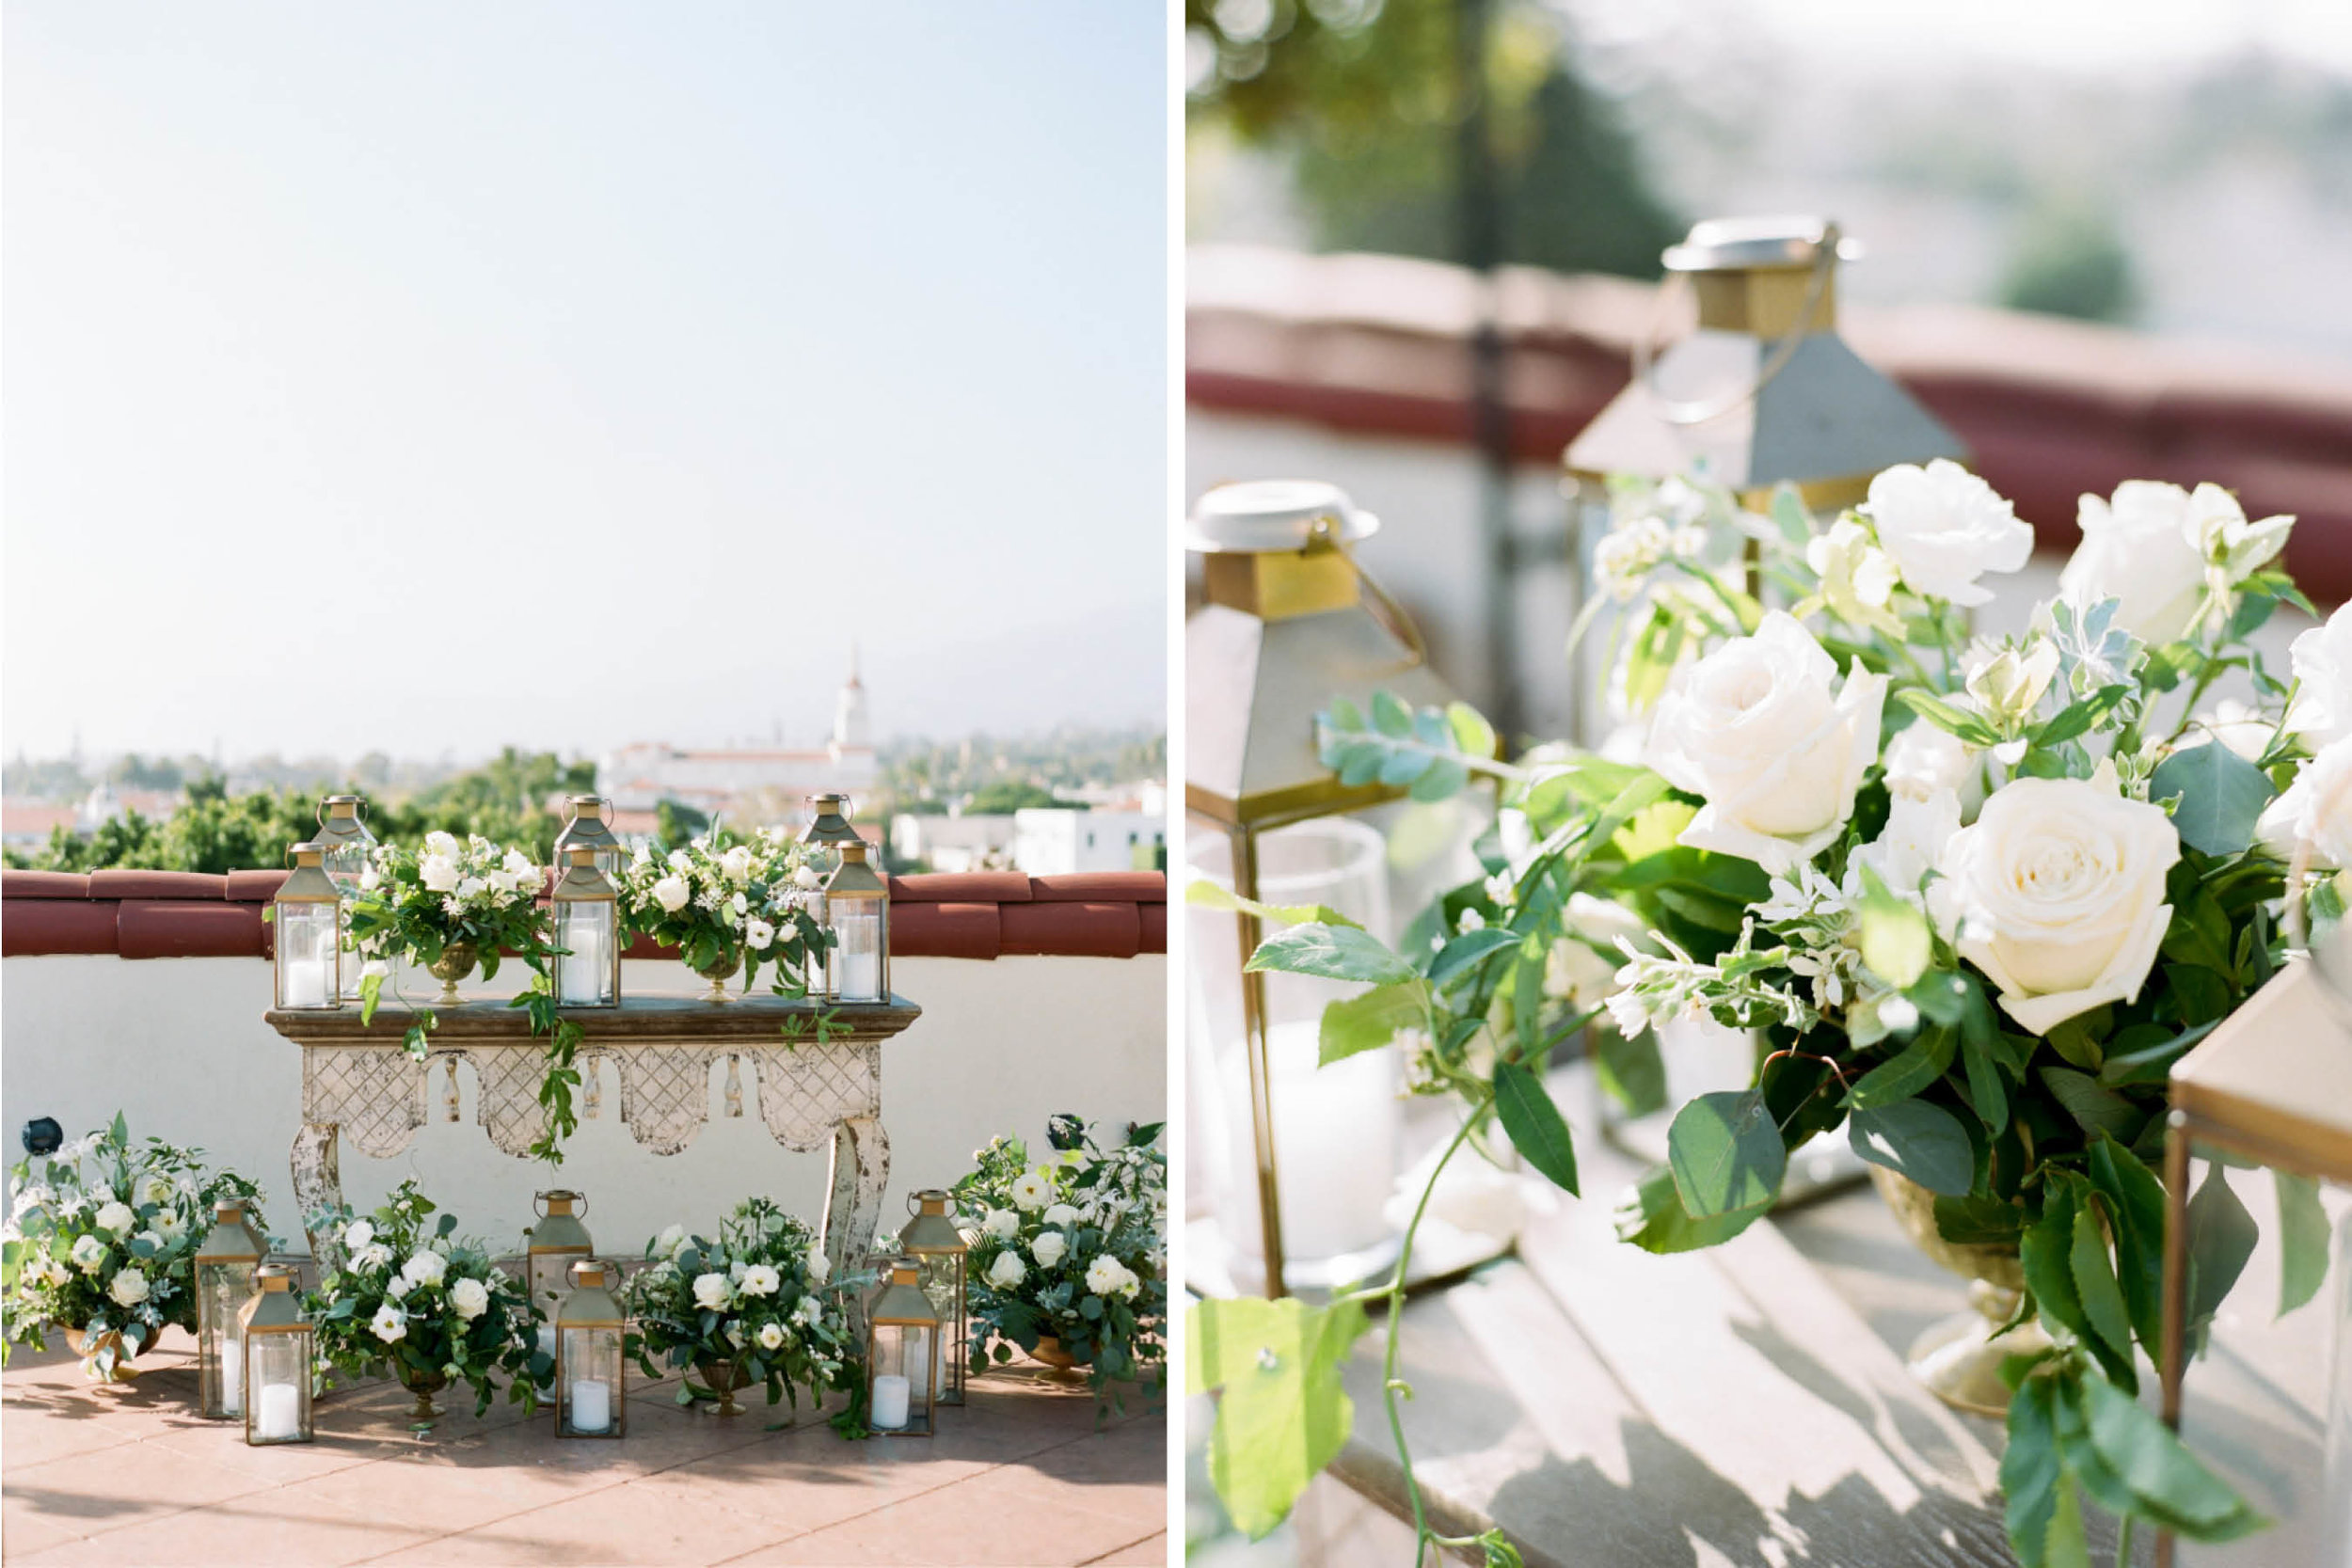 alegria-by-design-wedding-planner-planning-event-design-coordinator-day-of-canary-hotel-rooftop-beach-view-downtown-santa-barbara (14).jpg